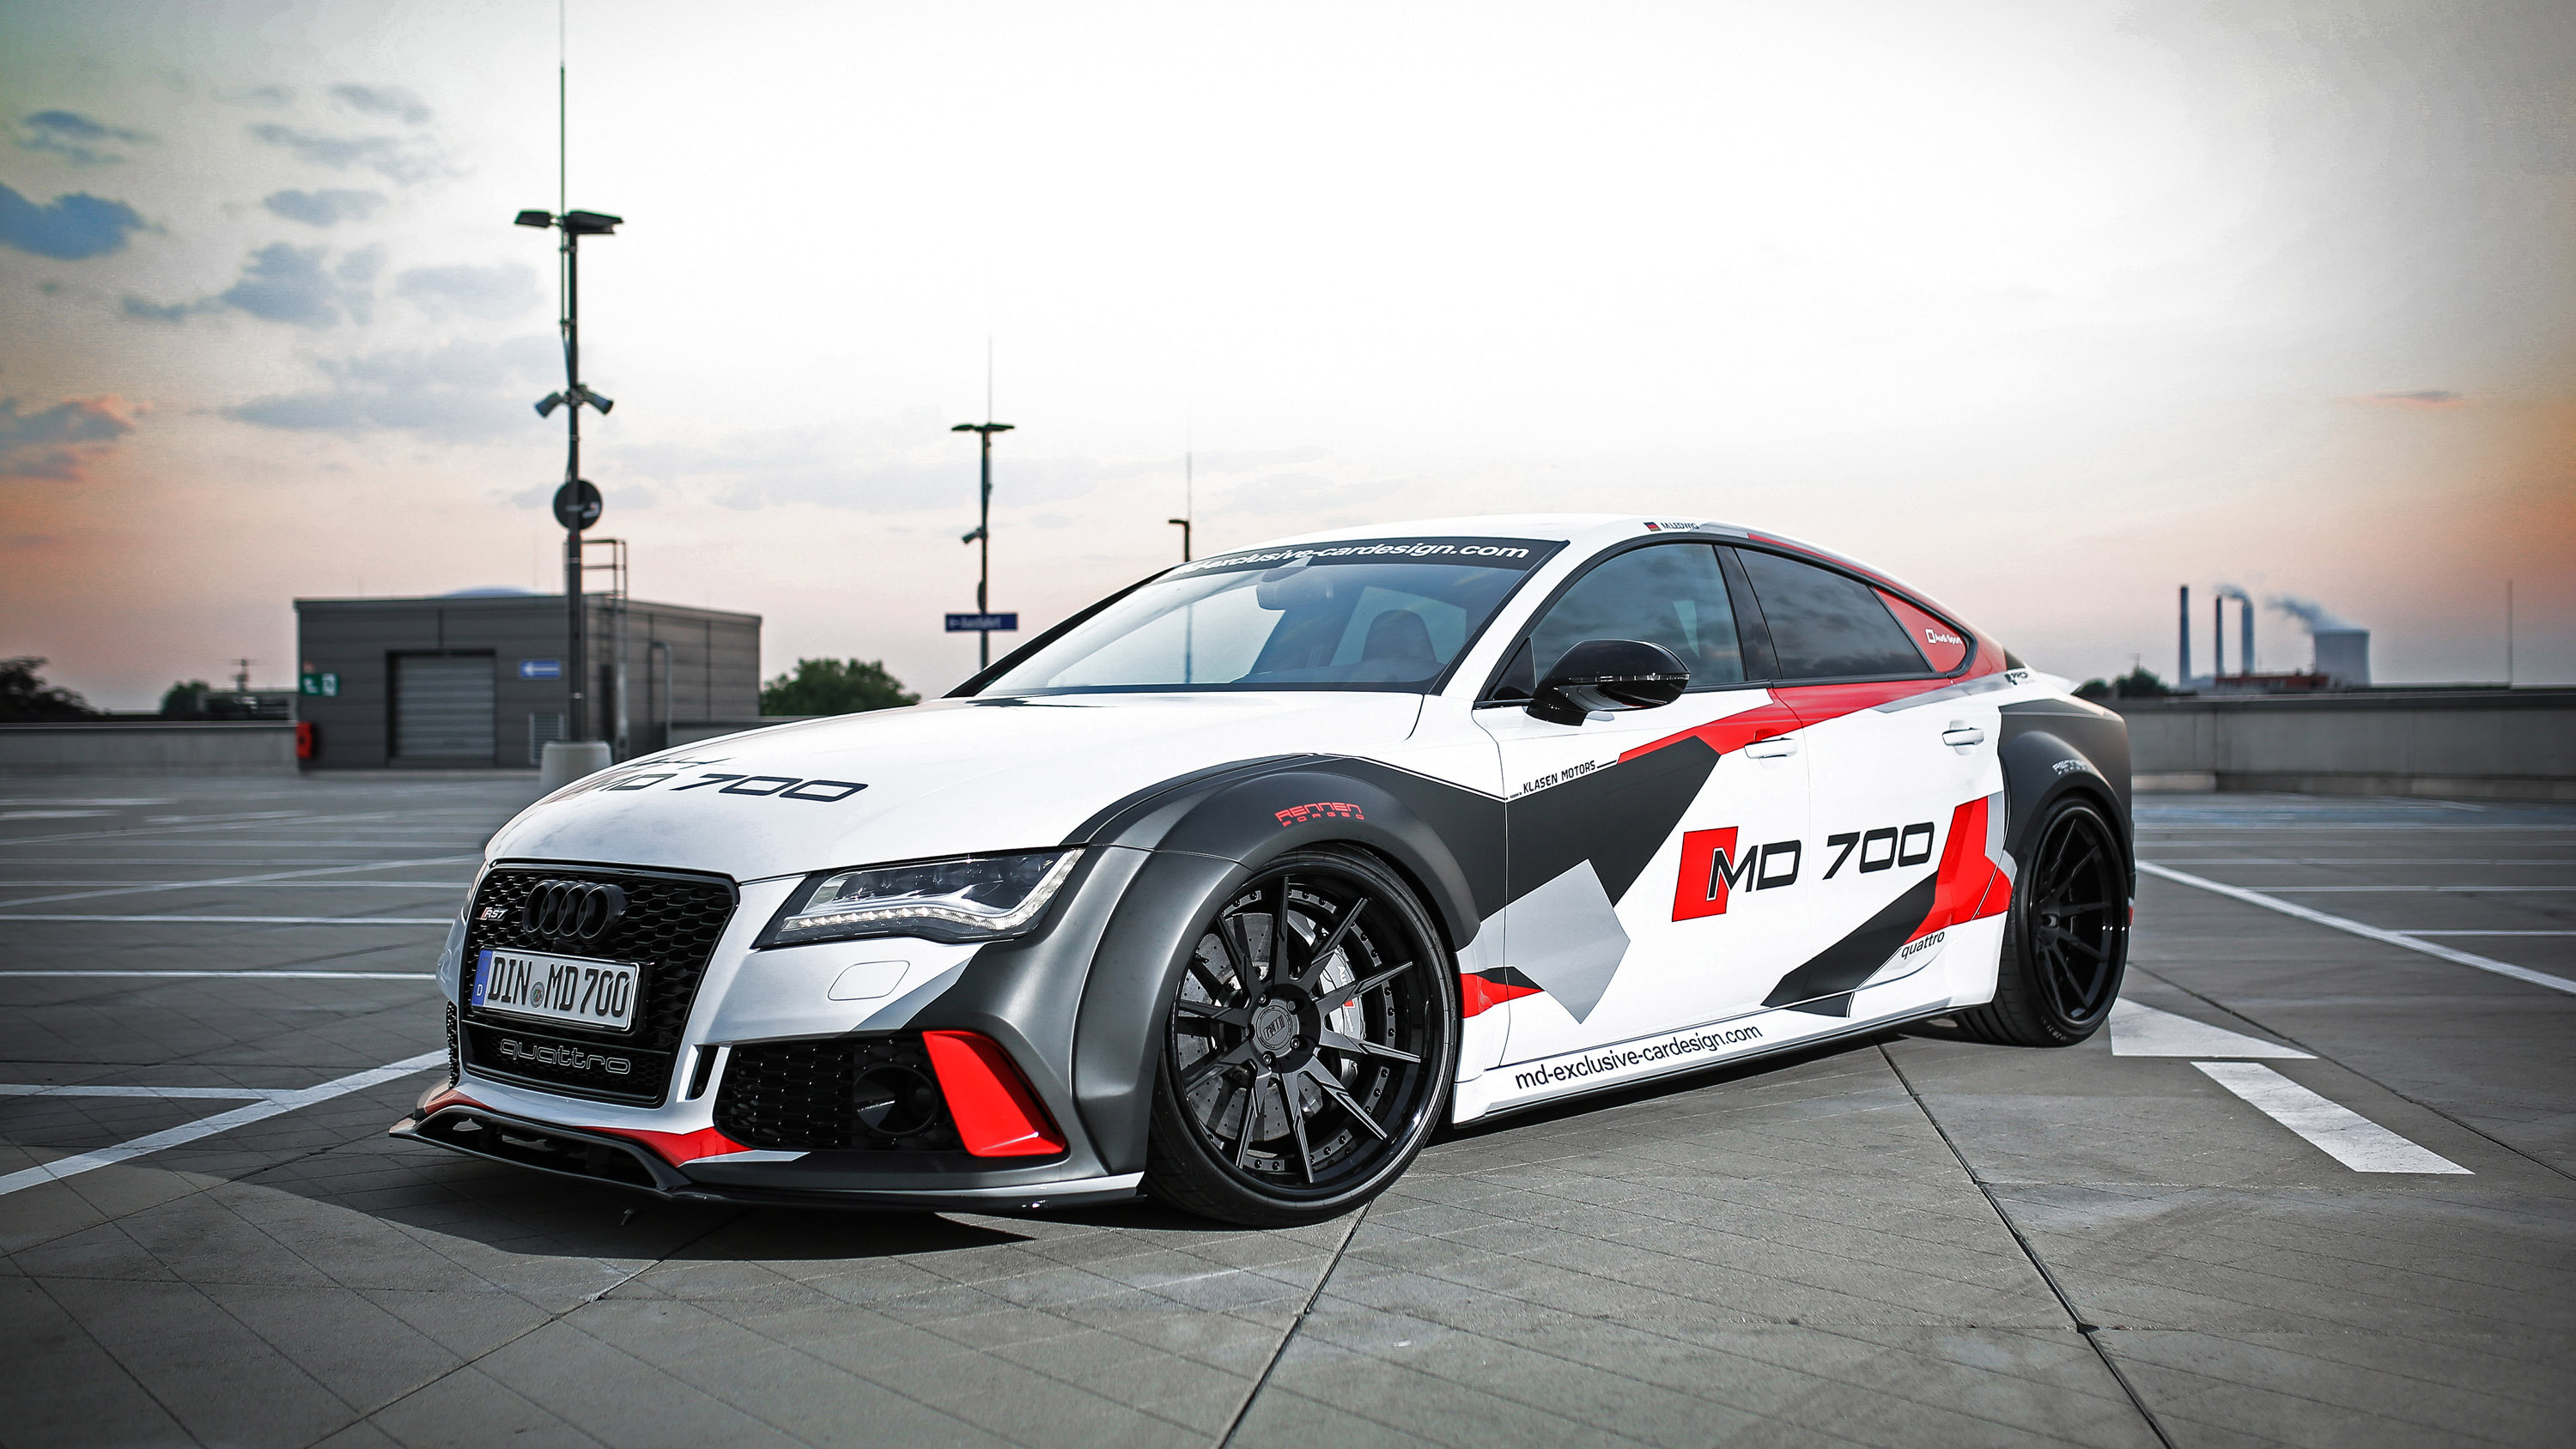 2016 Md Exclusive Cardesign Audi Rs7 Wallpaper Hd Car